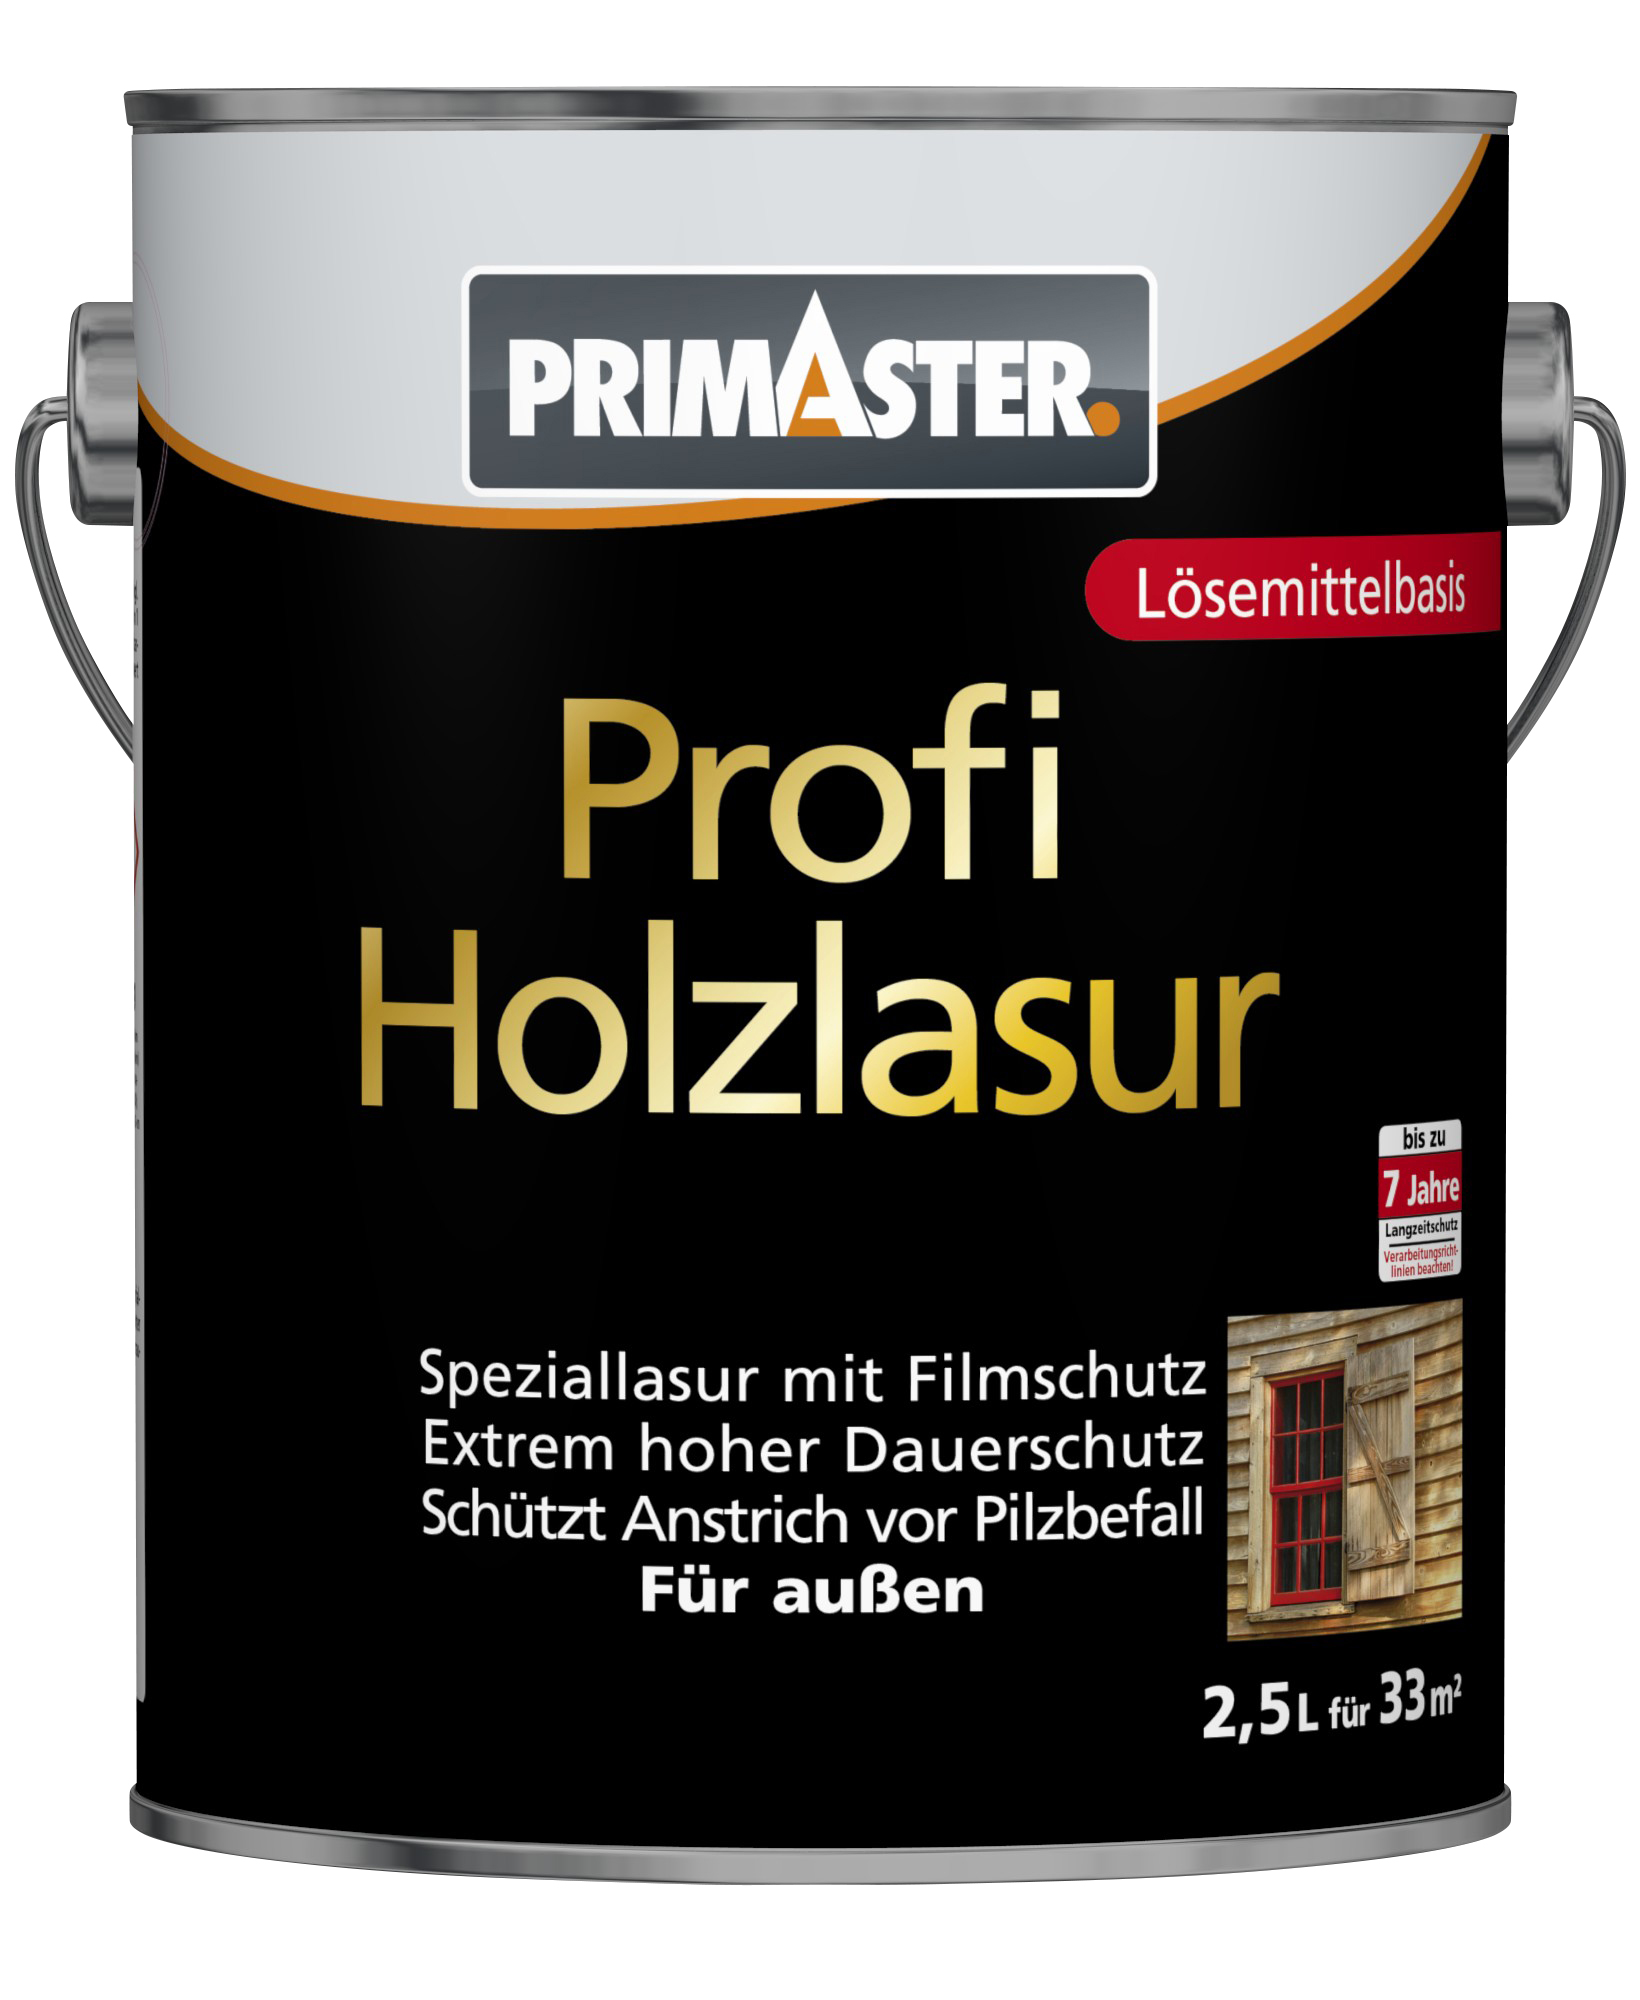 primaster profi holzschutzlasur holzlasuren globus baumarkt online shop. Black Bedroom Furniture Sets. Home Design Ideas